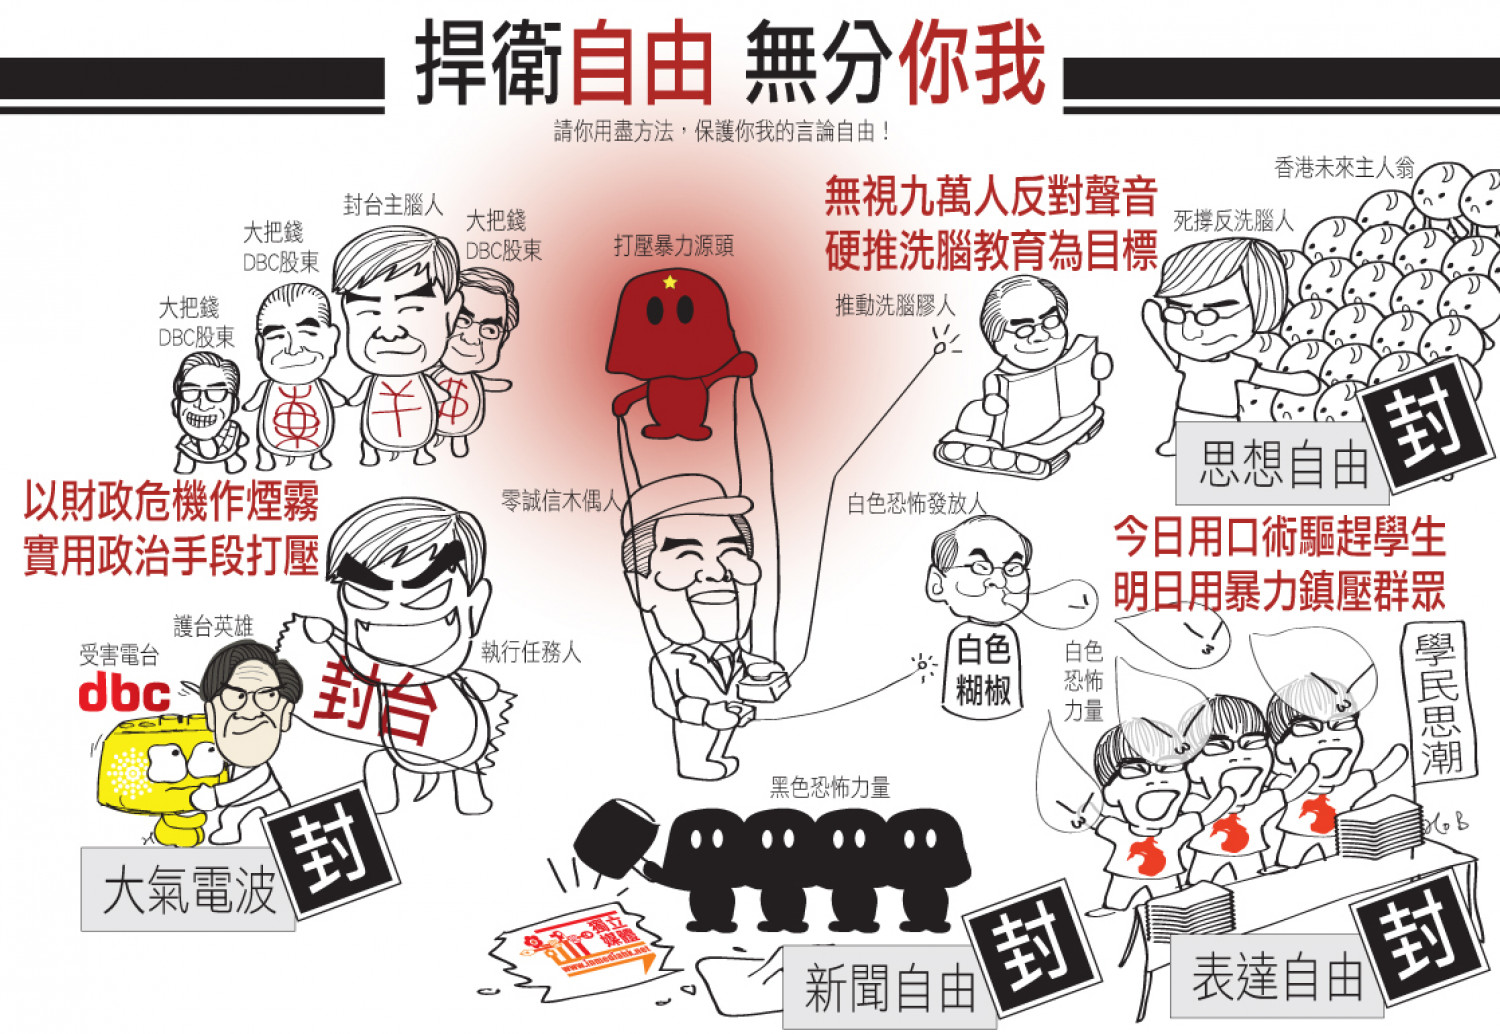 Democratic crisis in Hong Kong 2012 Infographic